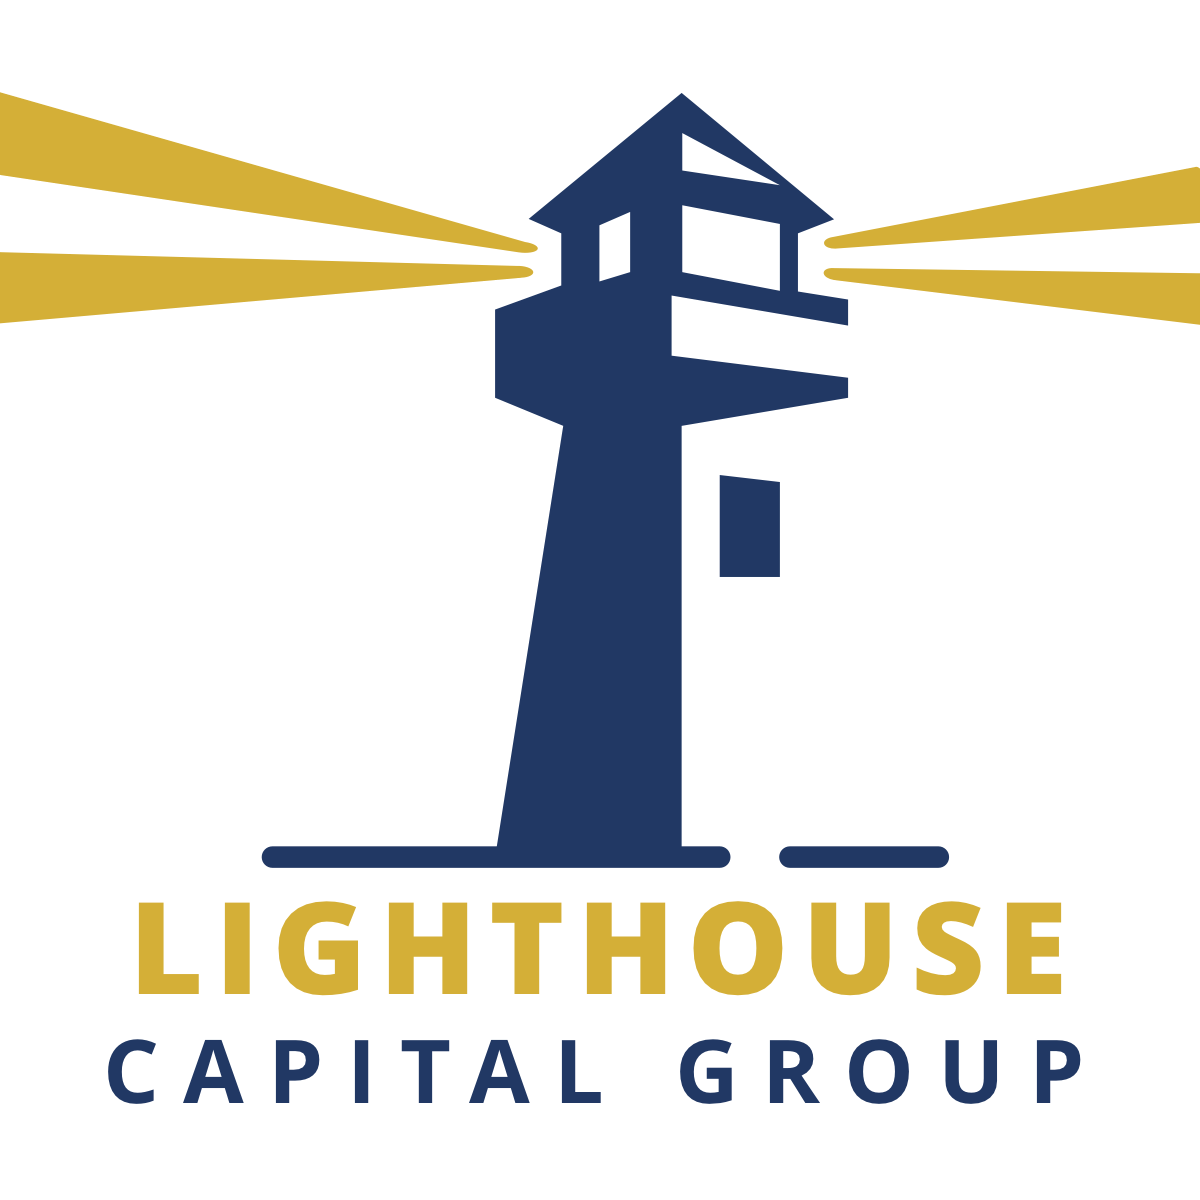 Lighthouse Capital Group